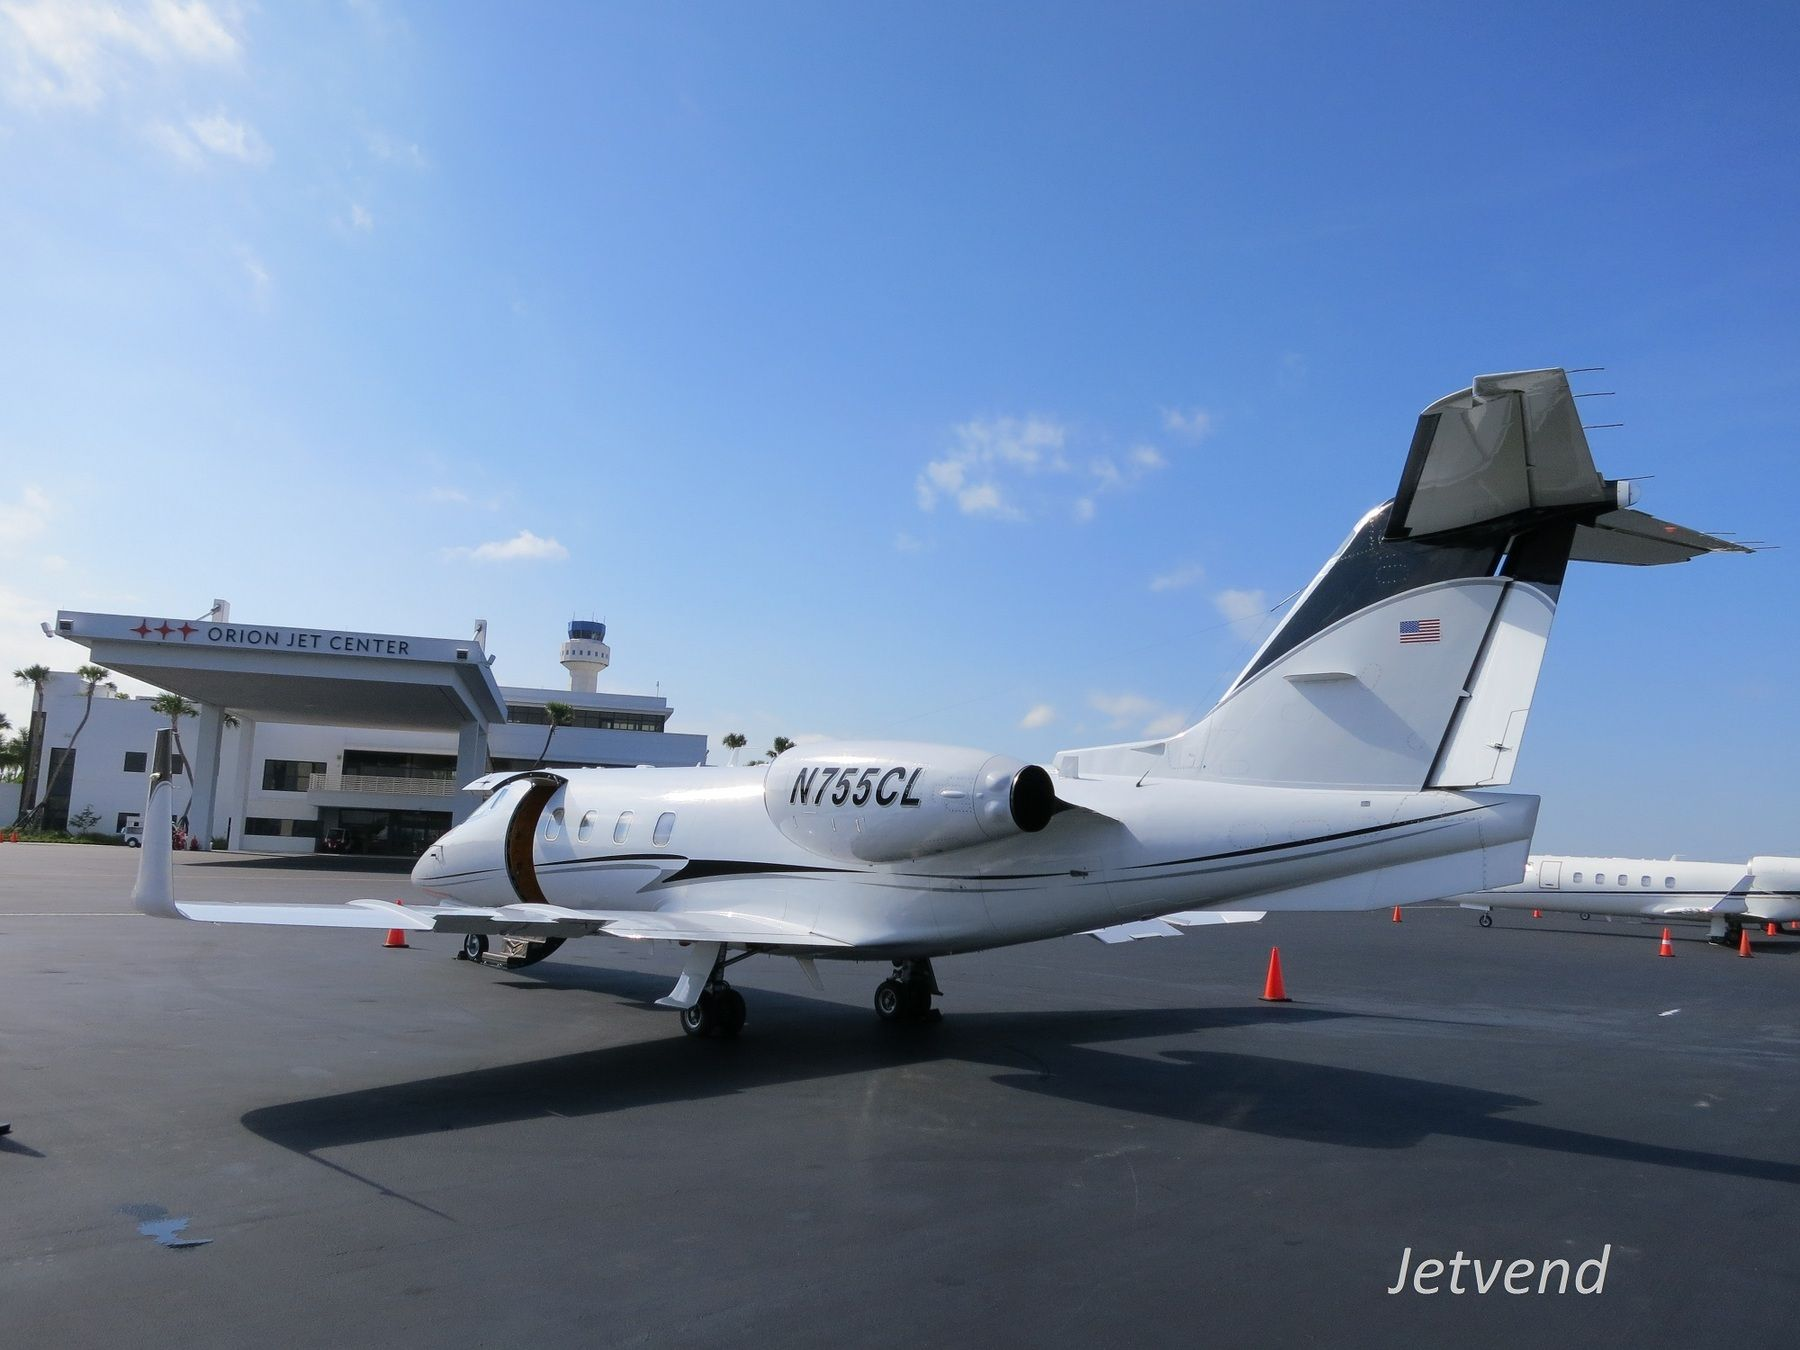 1983 Learjet 55 for sale in the United States => http